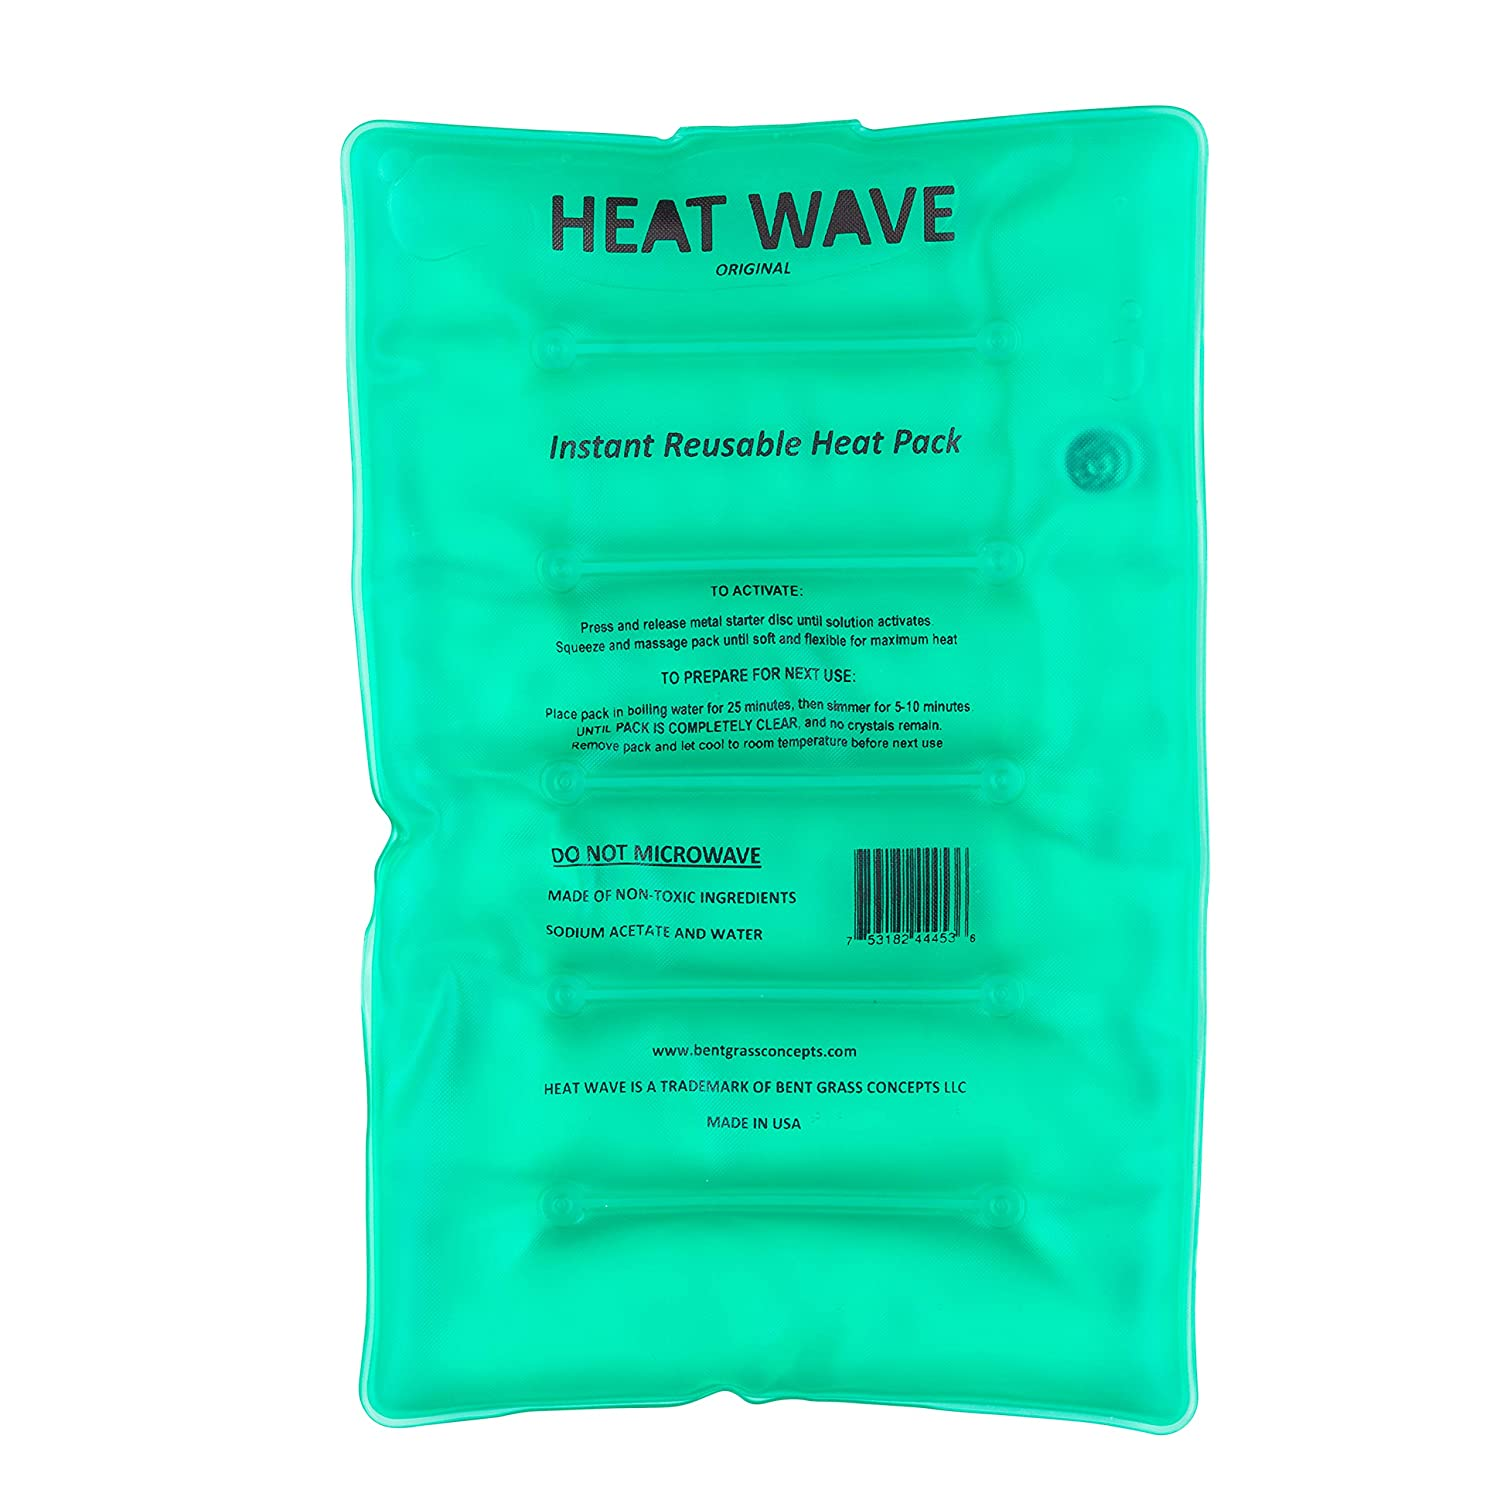 "HEAT WAVE Instant Reusable Heat Packs – Large (8x12""), Reusable Heat Pack for Muscle Aches, Back Pain, Pain Relief, Click Heat - Made in USA"